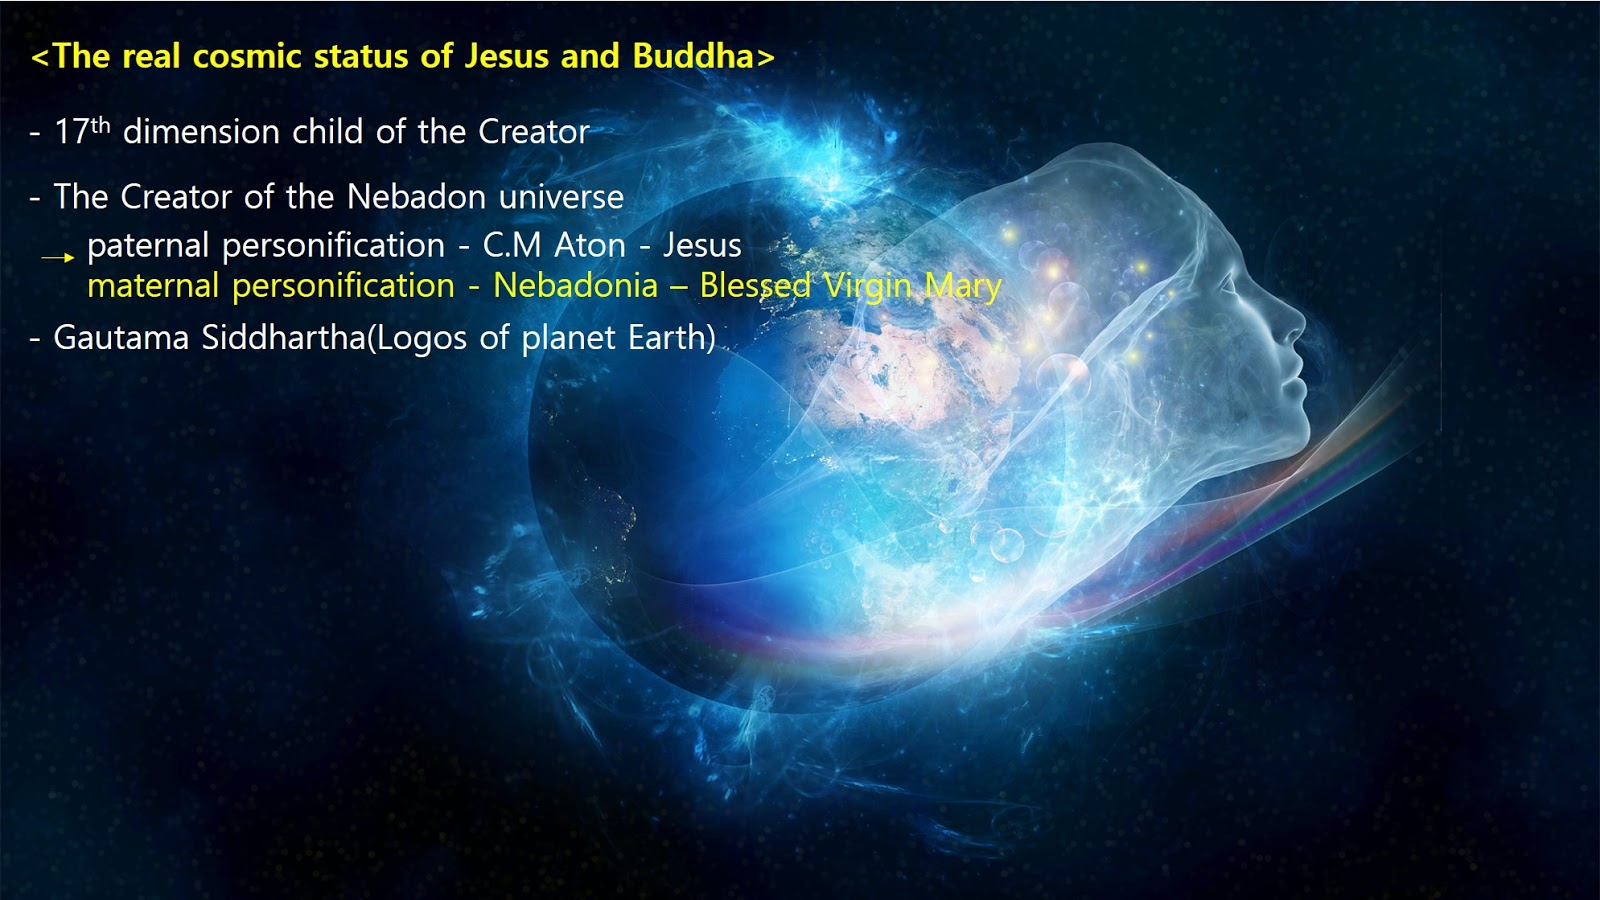 the real cosmic status of jesus and buddha the tree of life in the